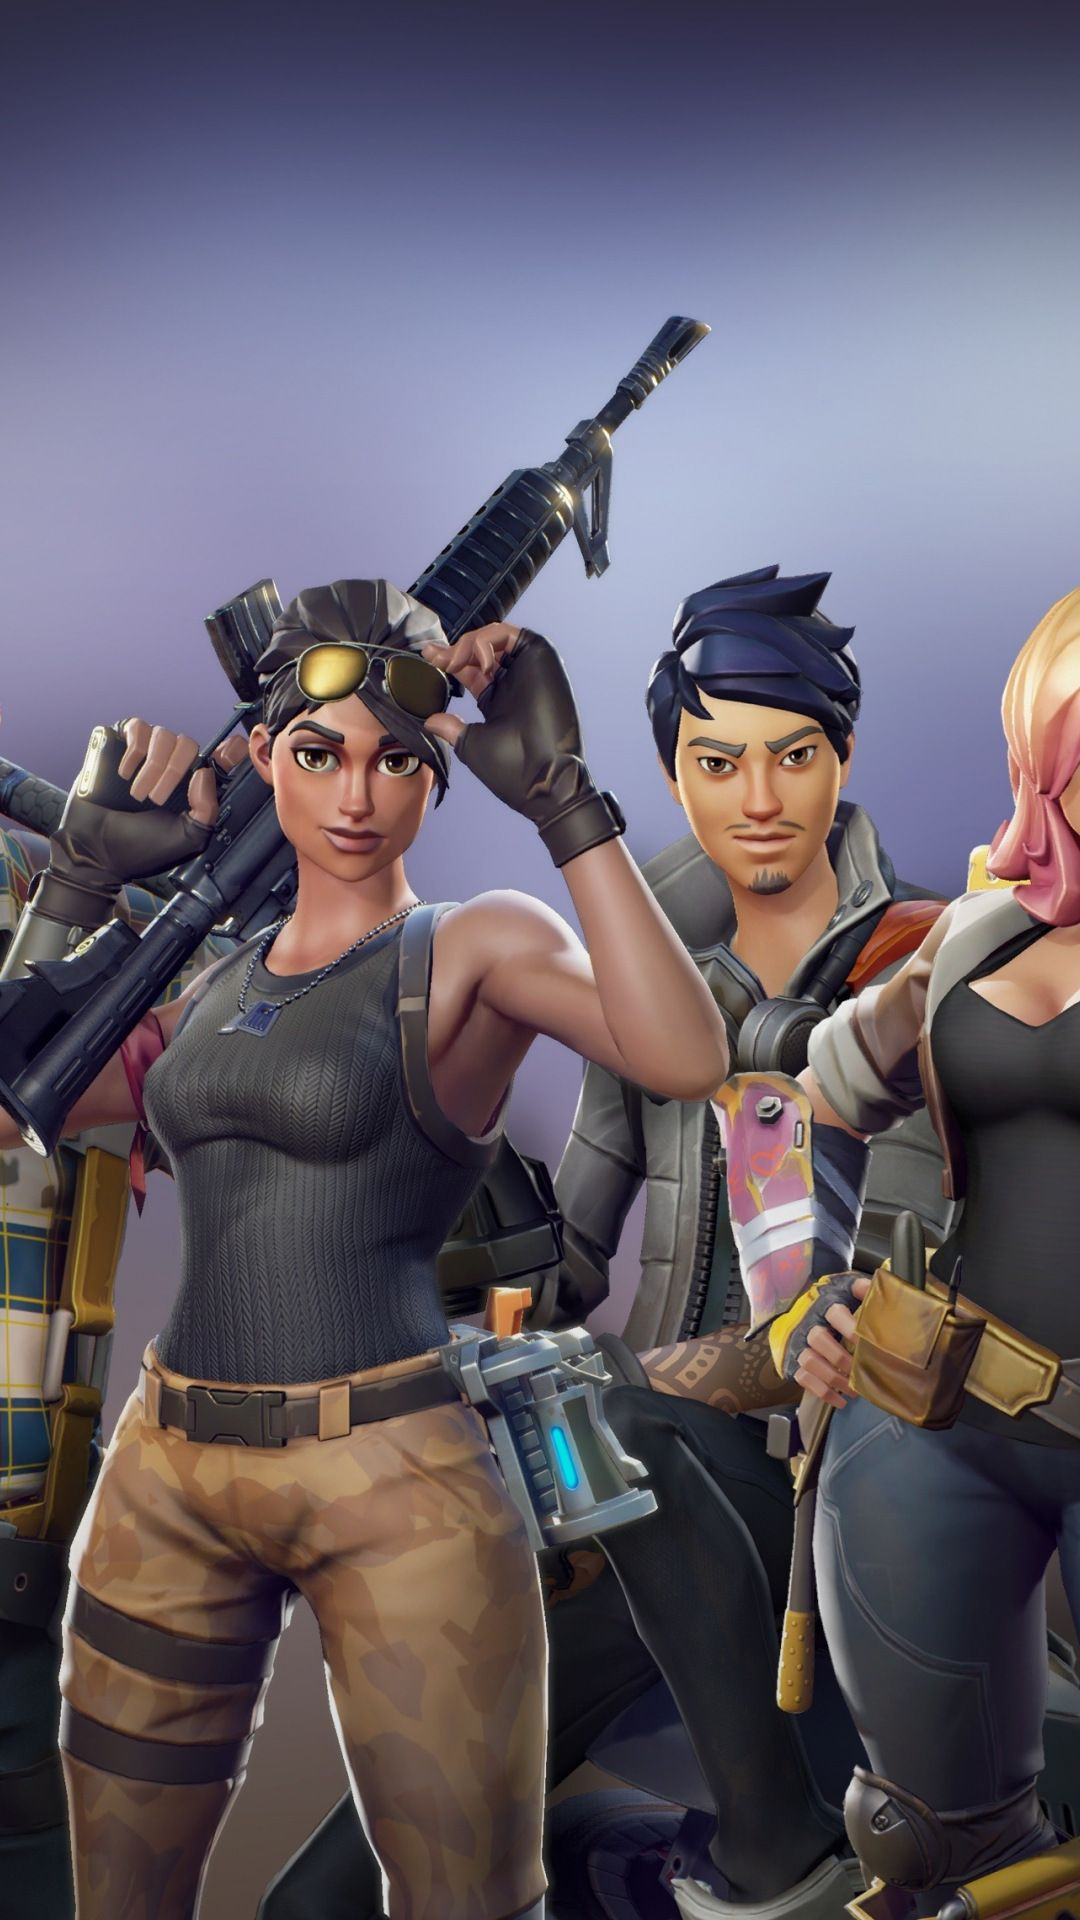 HD Fortnite wallpapers | Cool Fortnite Wallpapers, Background HD